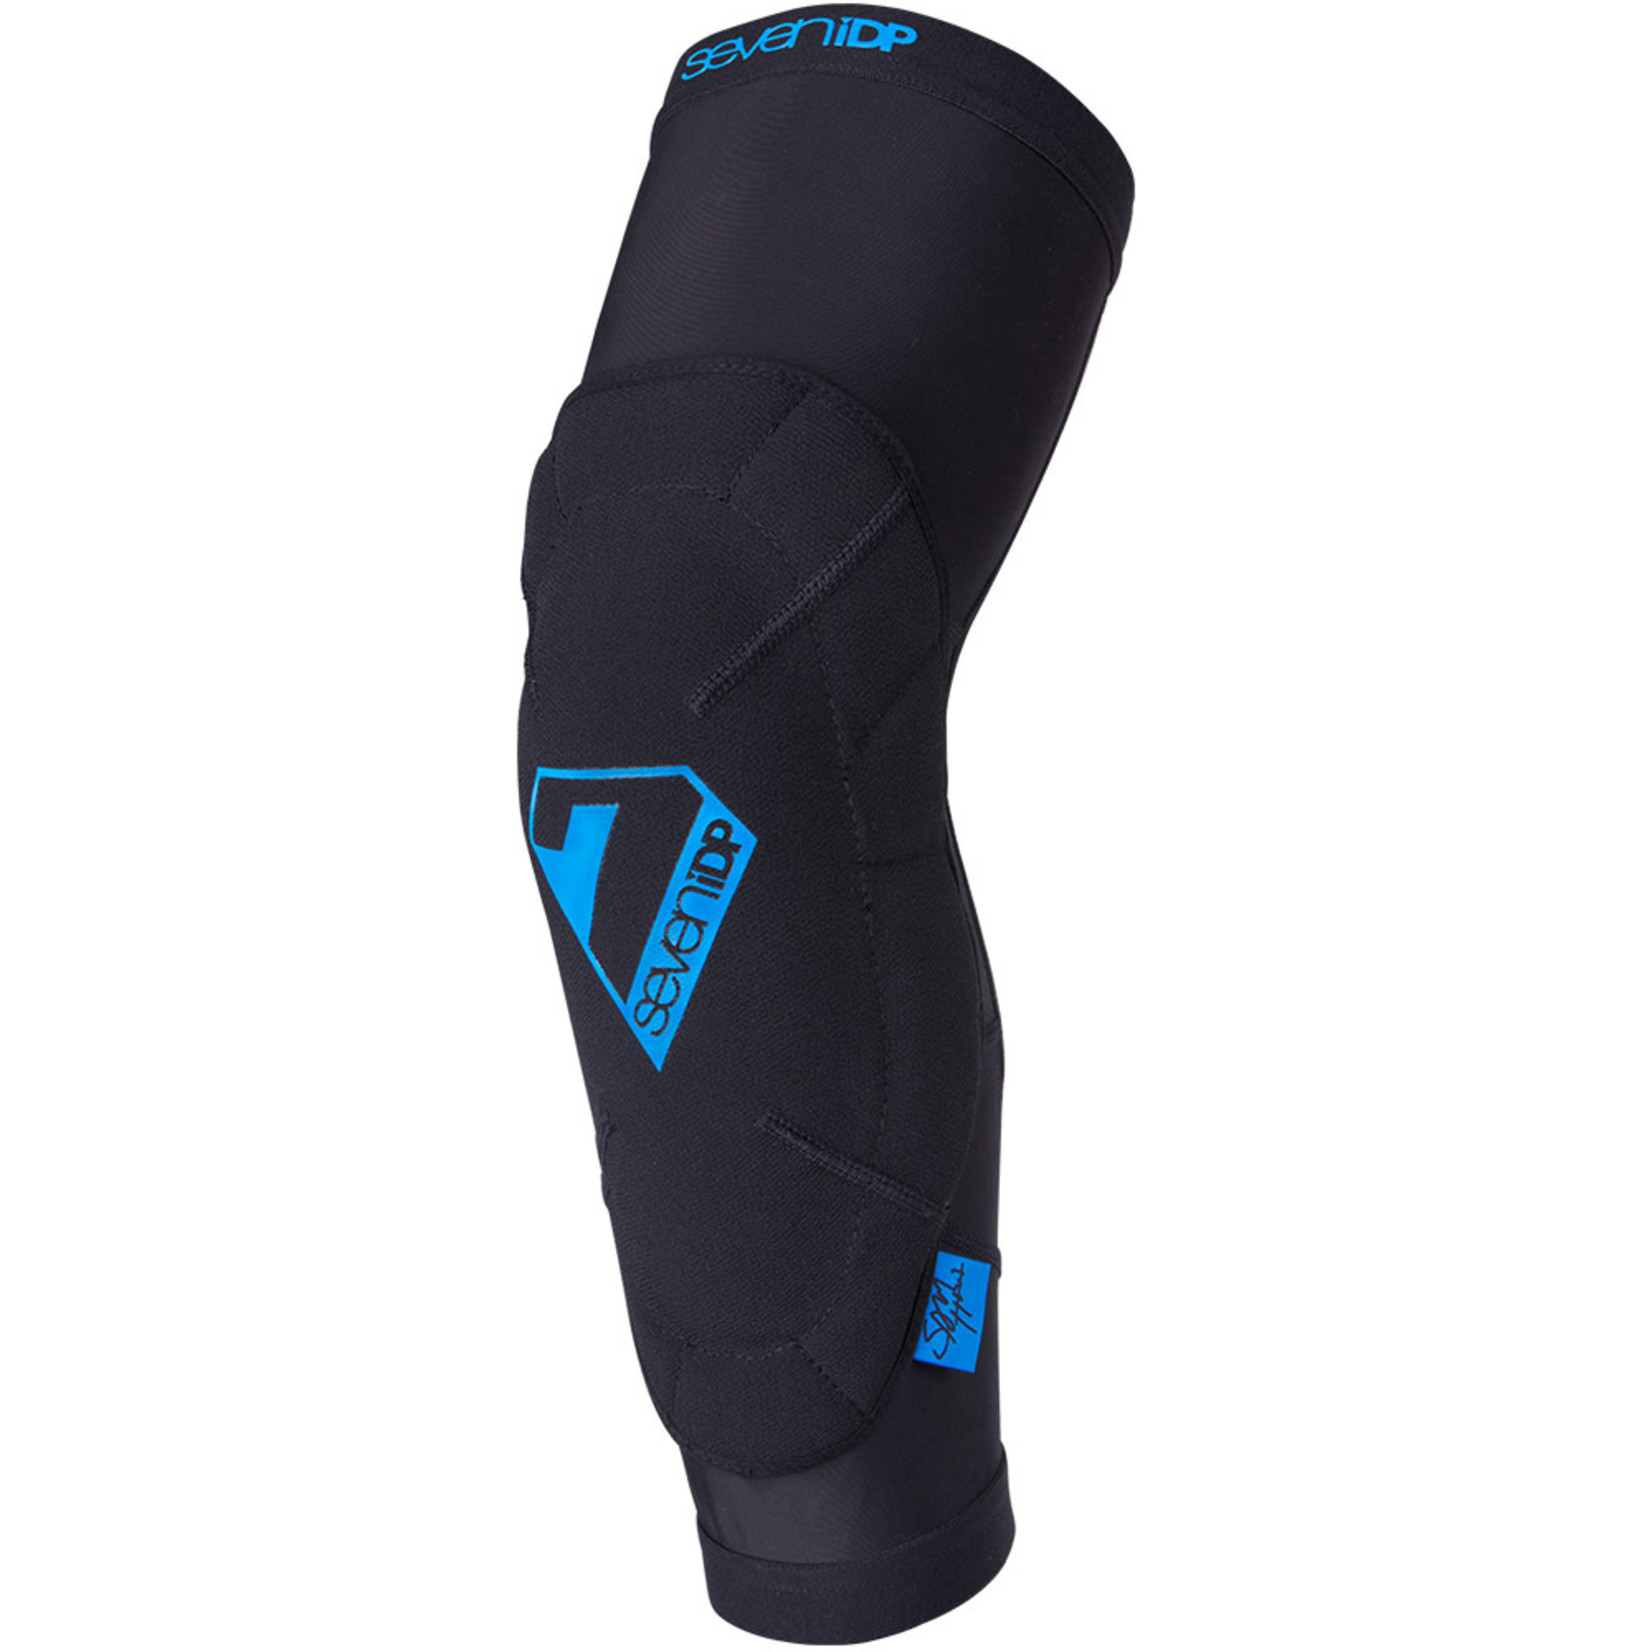 7 Protection 7 Protection - Knee Pad - Sam Hill